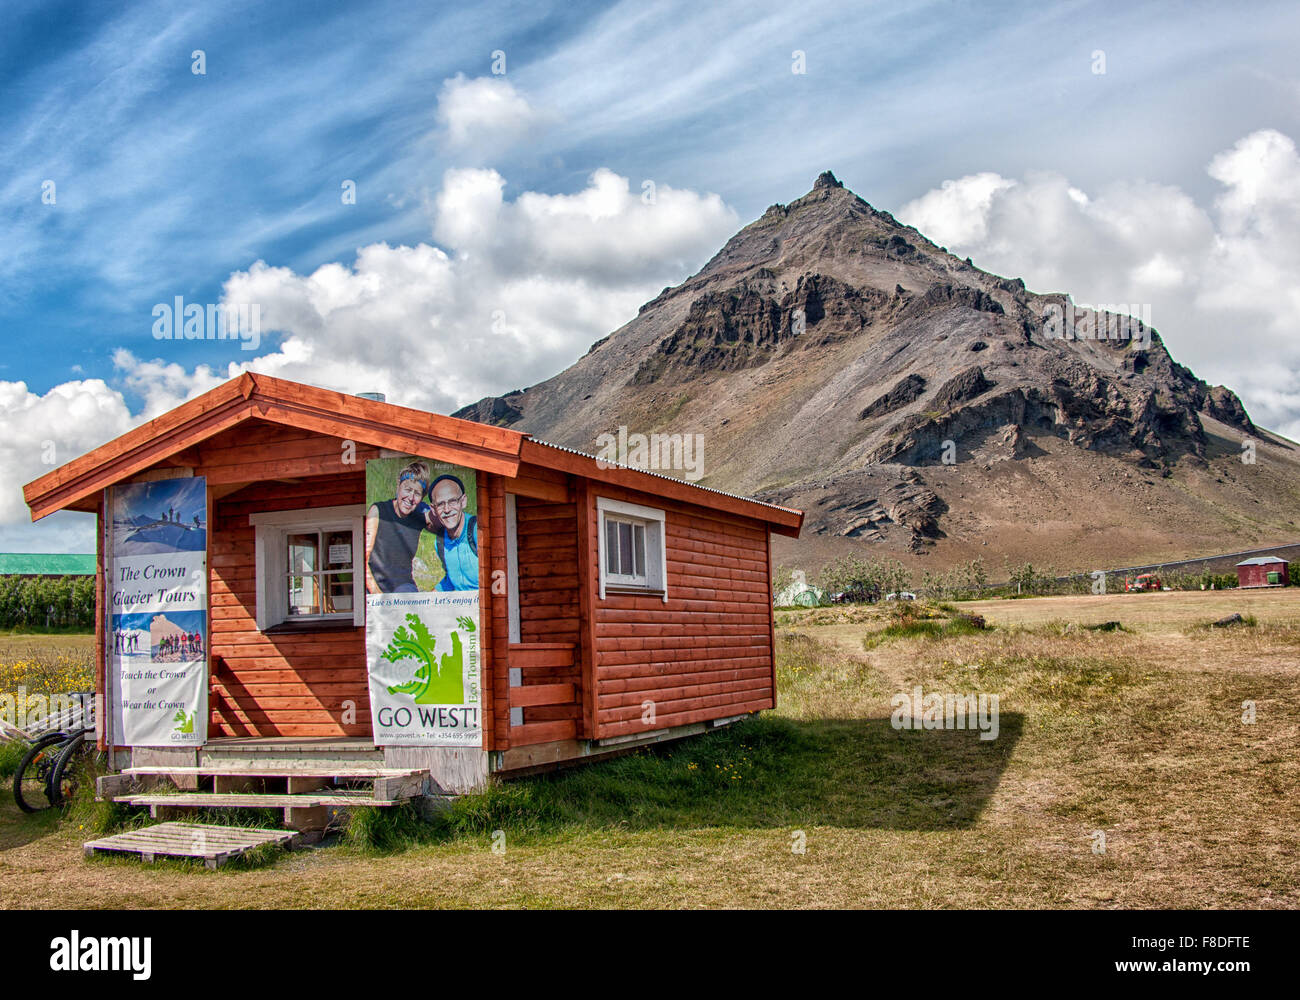 Snaefellsnes Peninsula, Iceland. 30th July, 2015. A wooden cabin with posters advertising tours of Iceland beneath Stock Photo